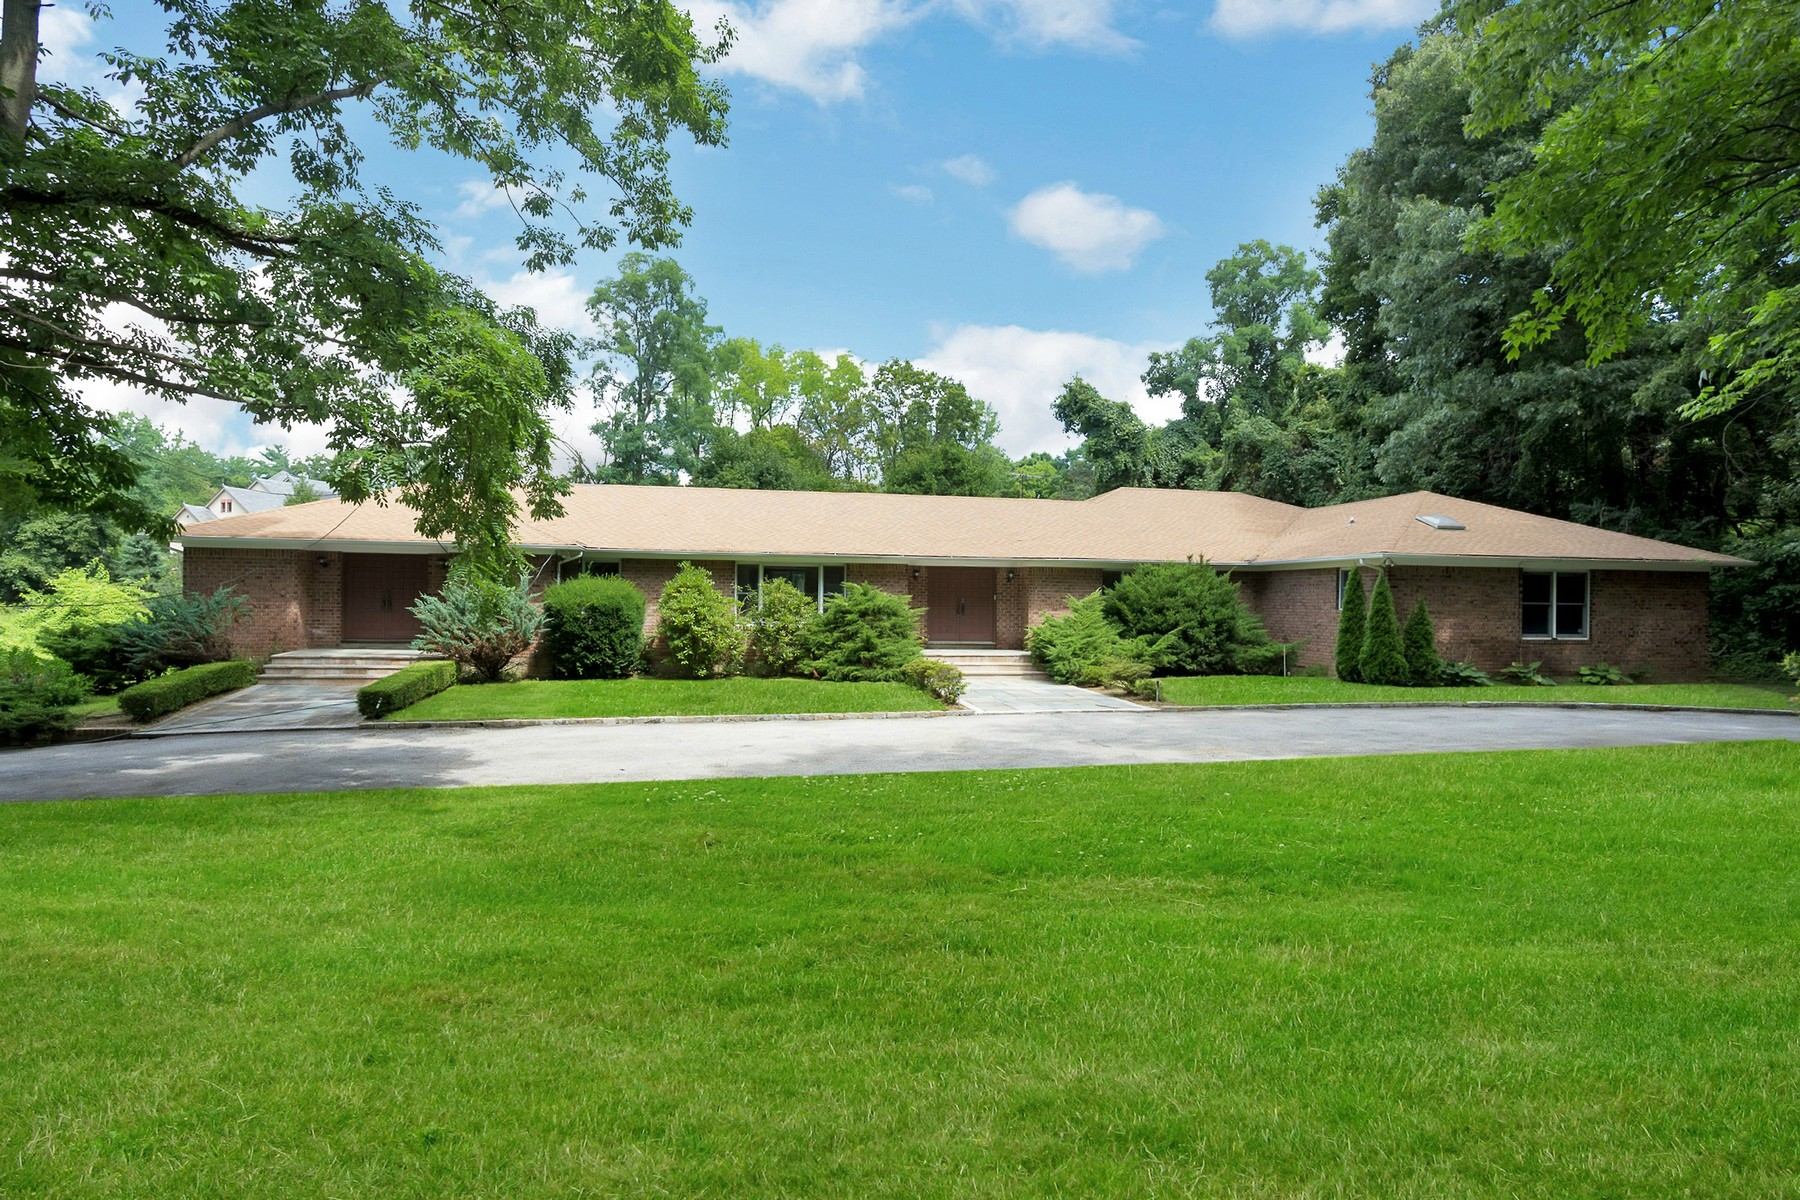 Single Family Home for Sale at Ranch 169 Middle Neck Rd Sands Point, New York, 11050 United States